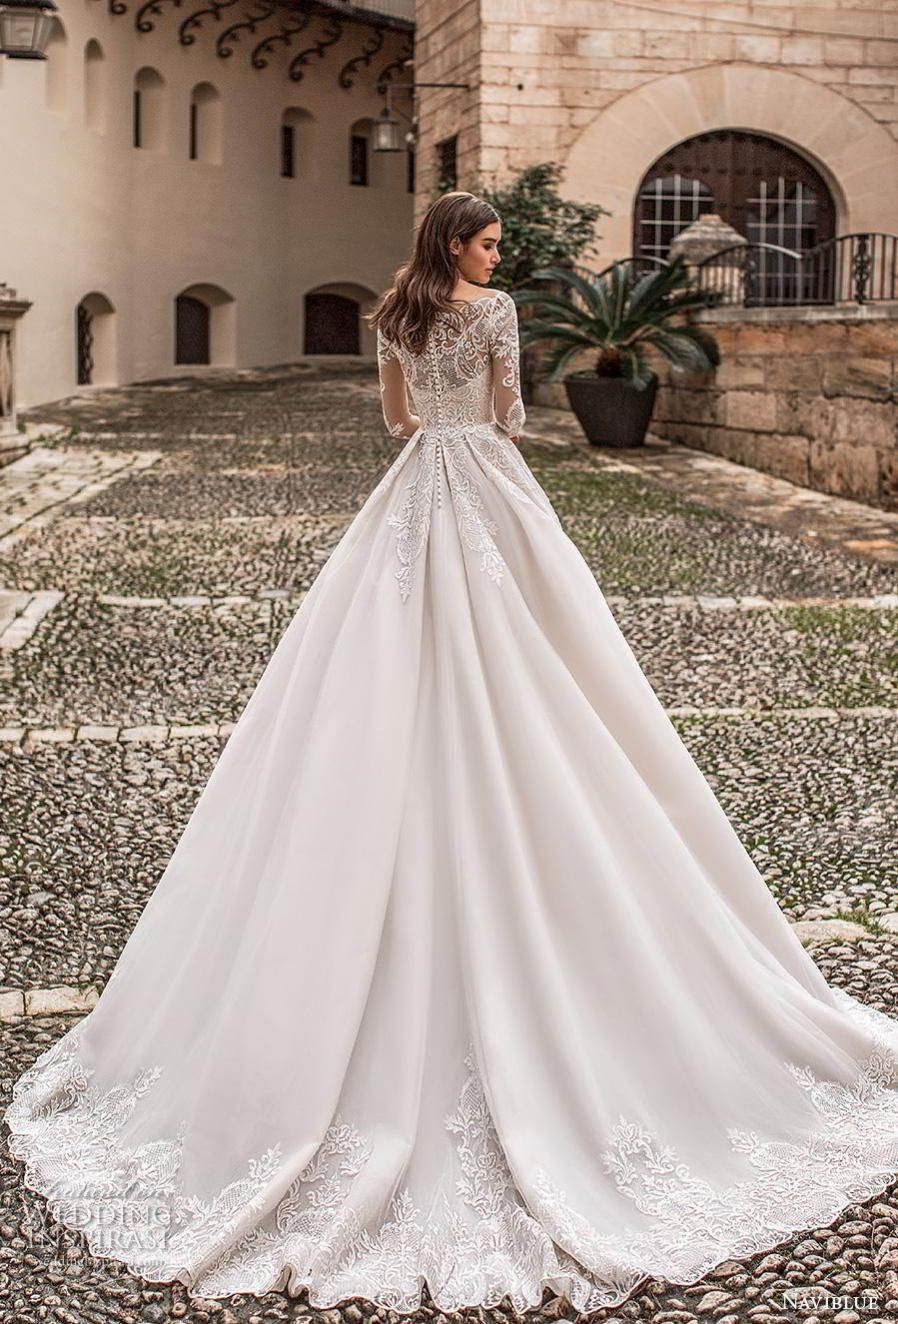 c60ce5eaf0e naviblue 2019 bridal long sleeves illusion off the shoulder sweetheart  neckline heavily embellished bodice princess romantic a line wedding dress  lace back ...